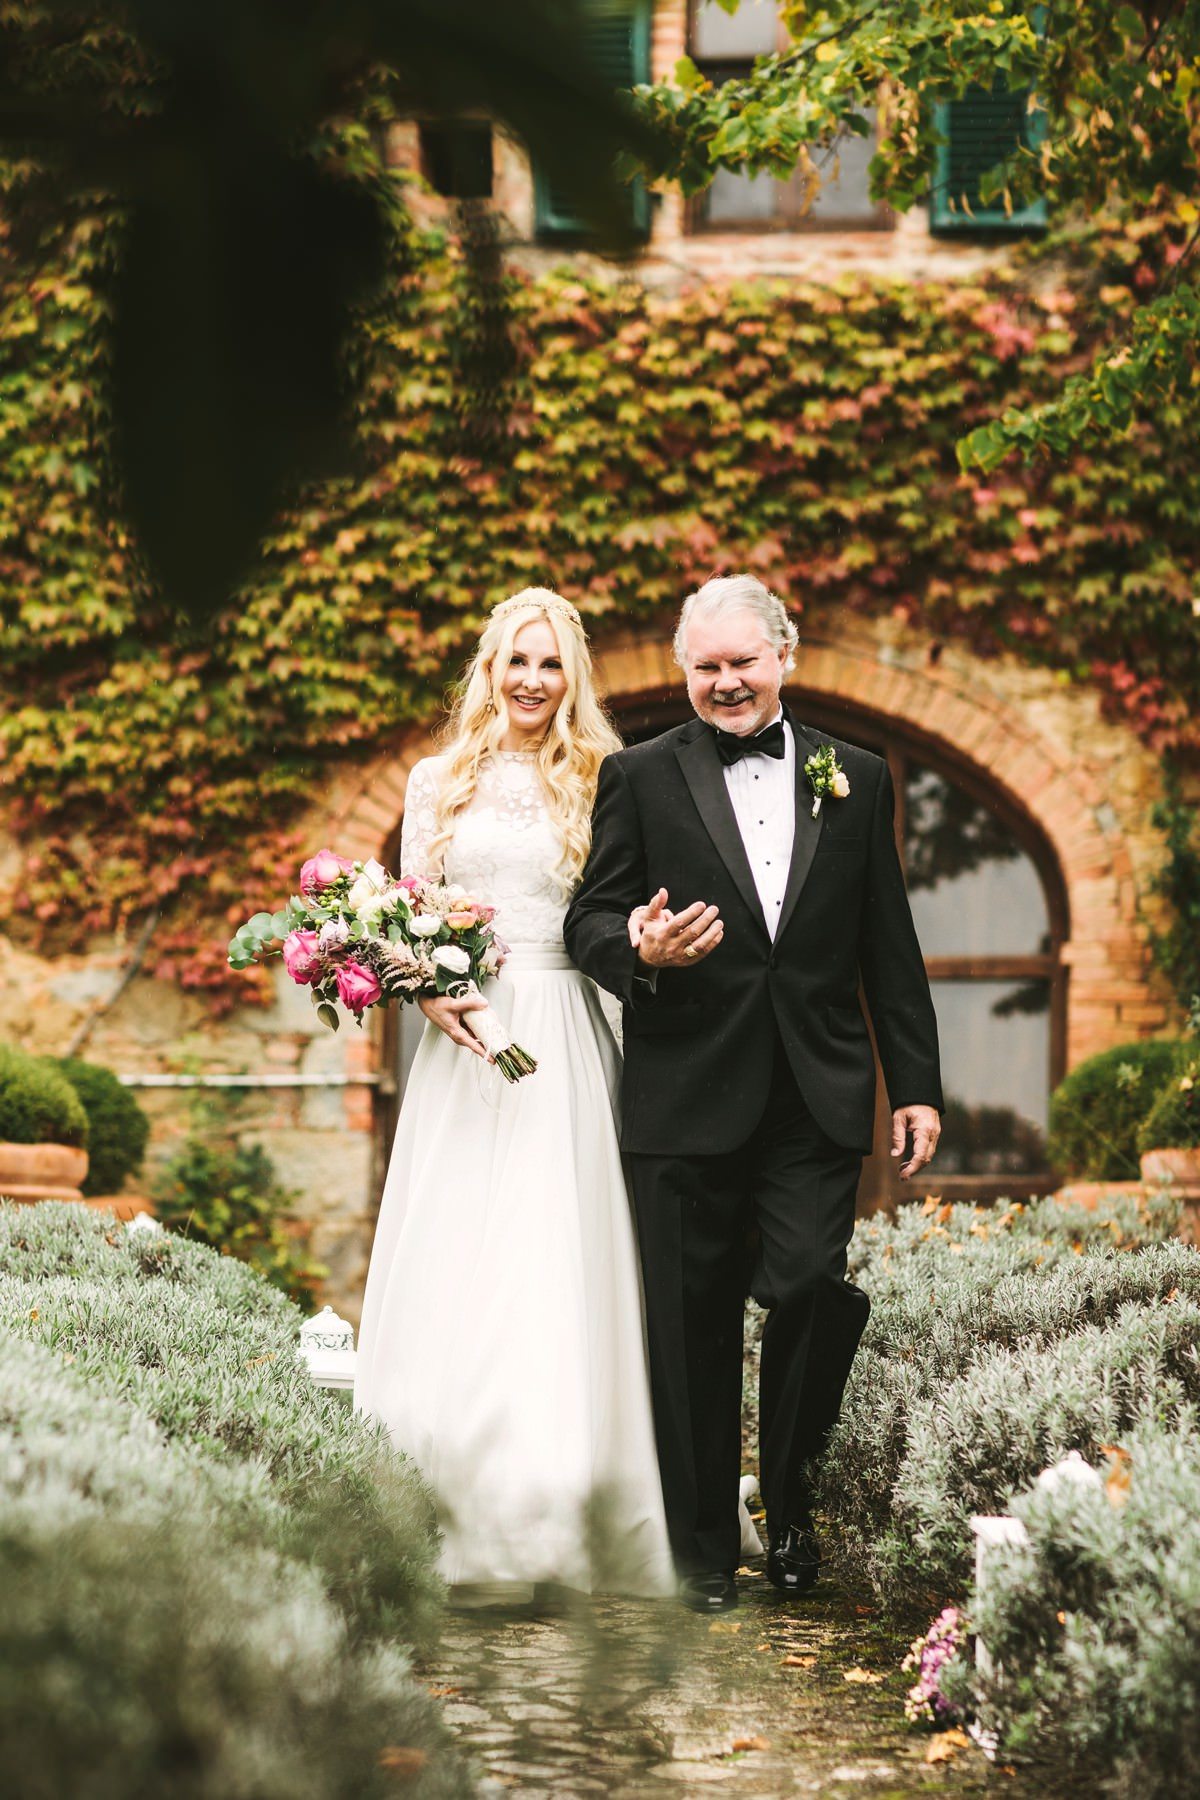 Bride and father wlak to the groom. Outdoor ceremony in Tuscany Val D'Orcia wedding